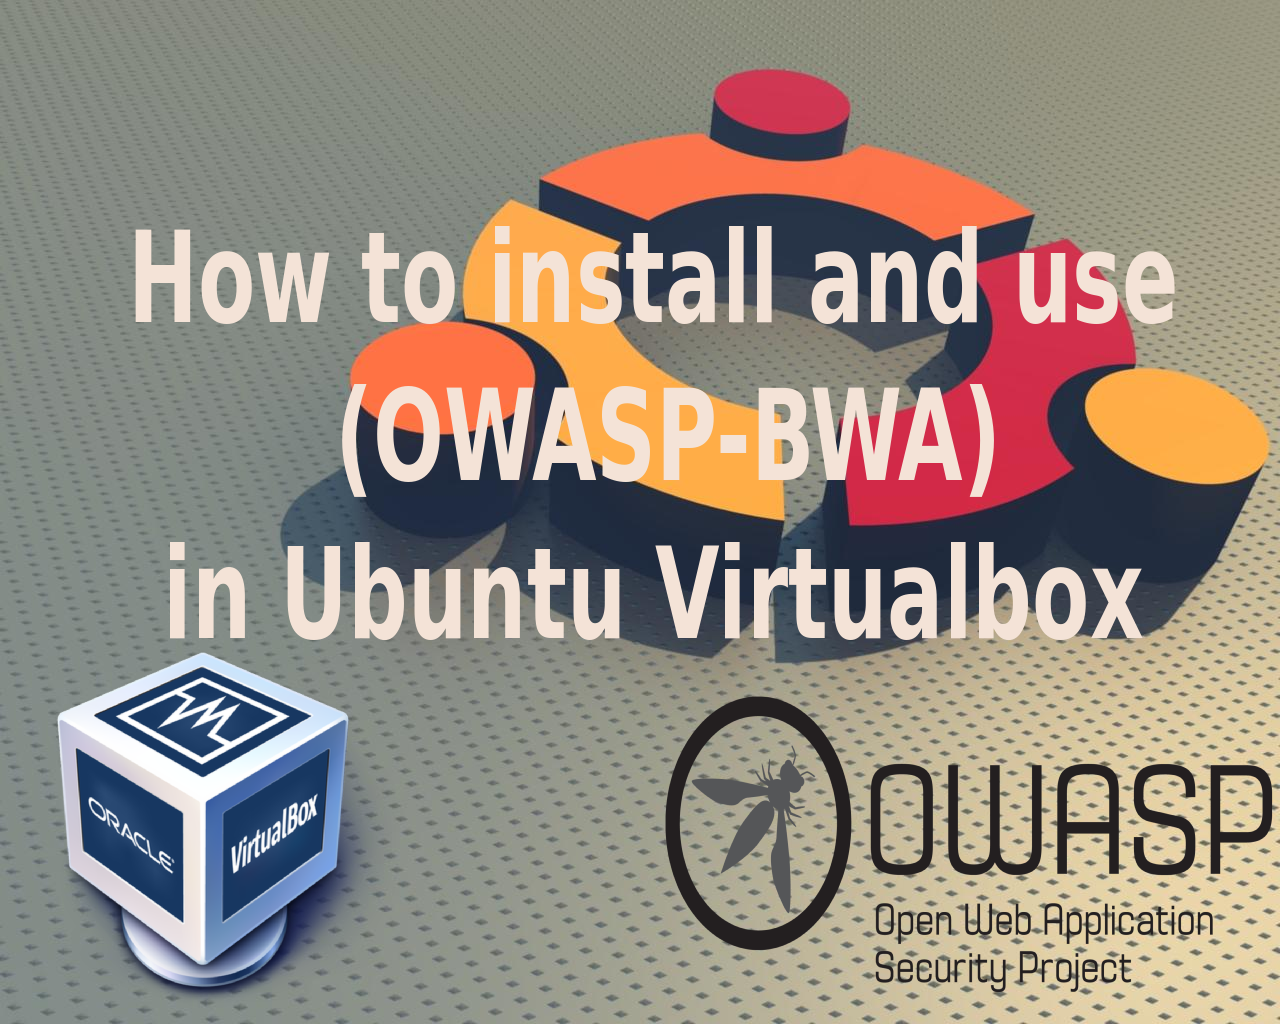 How To Install And Use Open Web Application Security Project Broken Web  Application (owasp Bwa